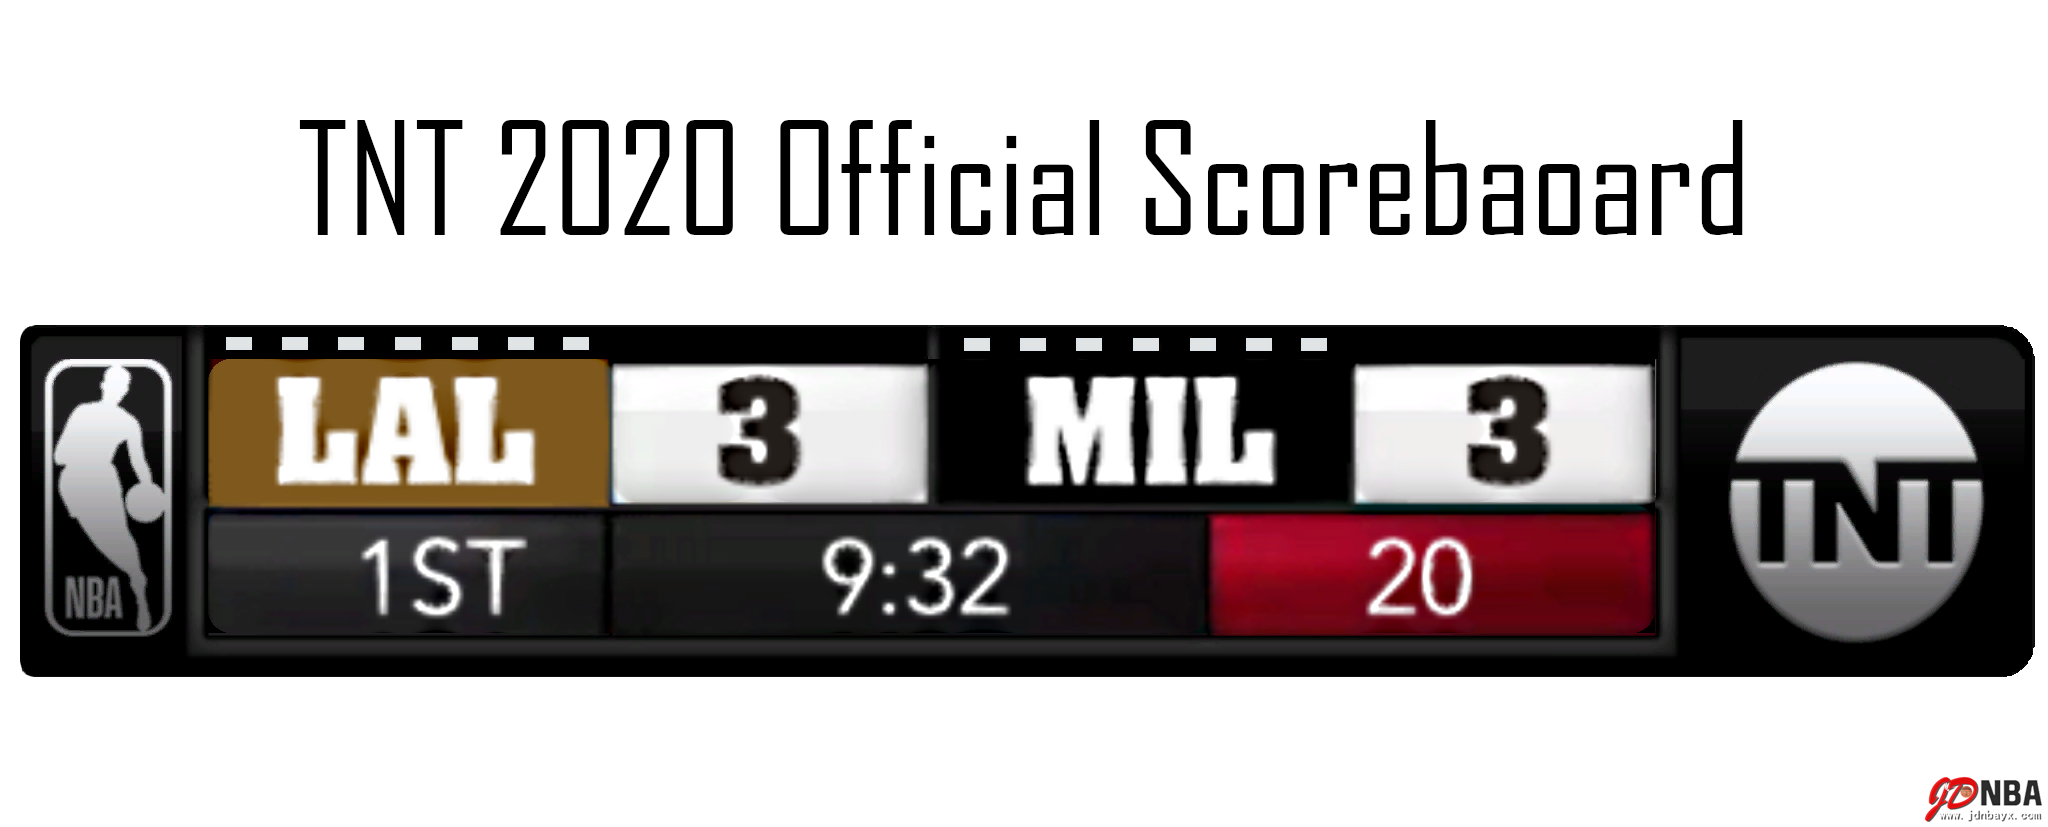 Main Board Preview.png